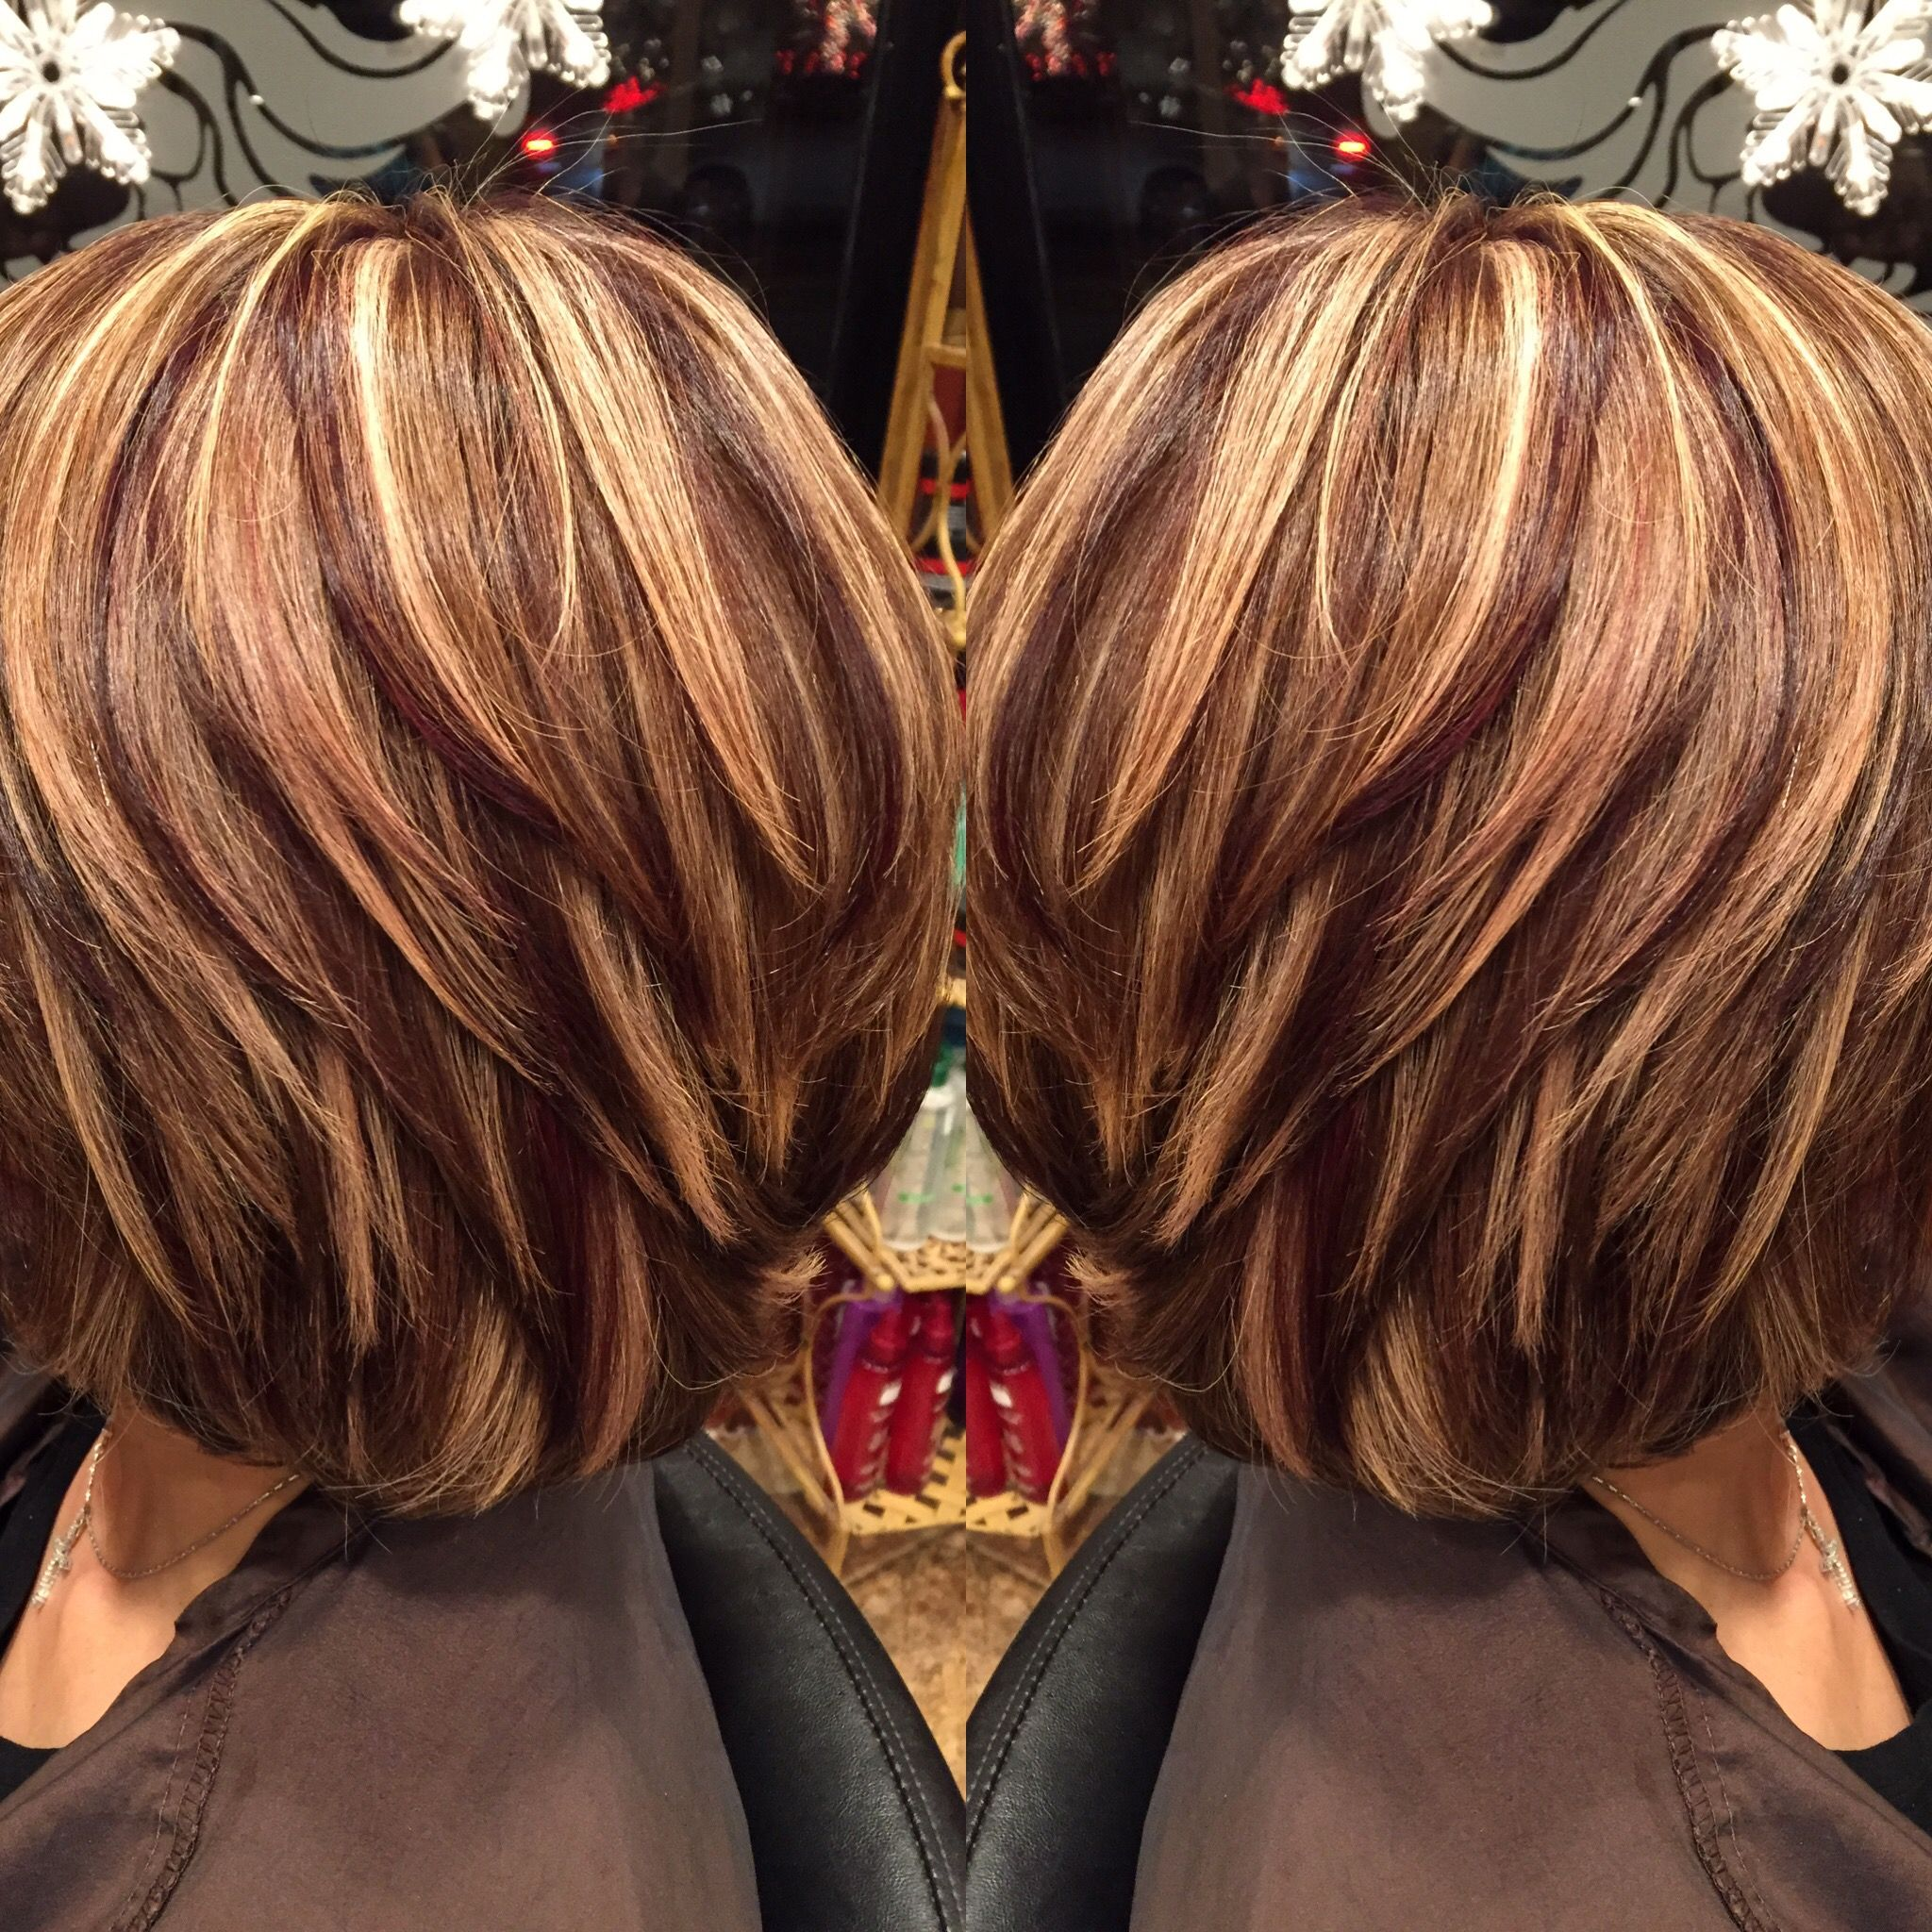 Highlights and lowlights josephashleysalon http hair color style smooth well blended stacked styled med length layers whighlights and lowlights xmulti colorshades fully through all layers of pmusecretfo Gallery